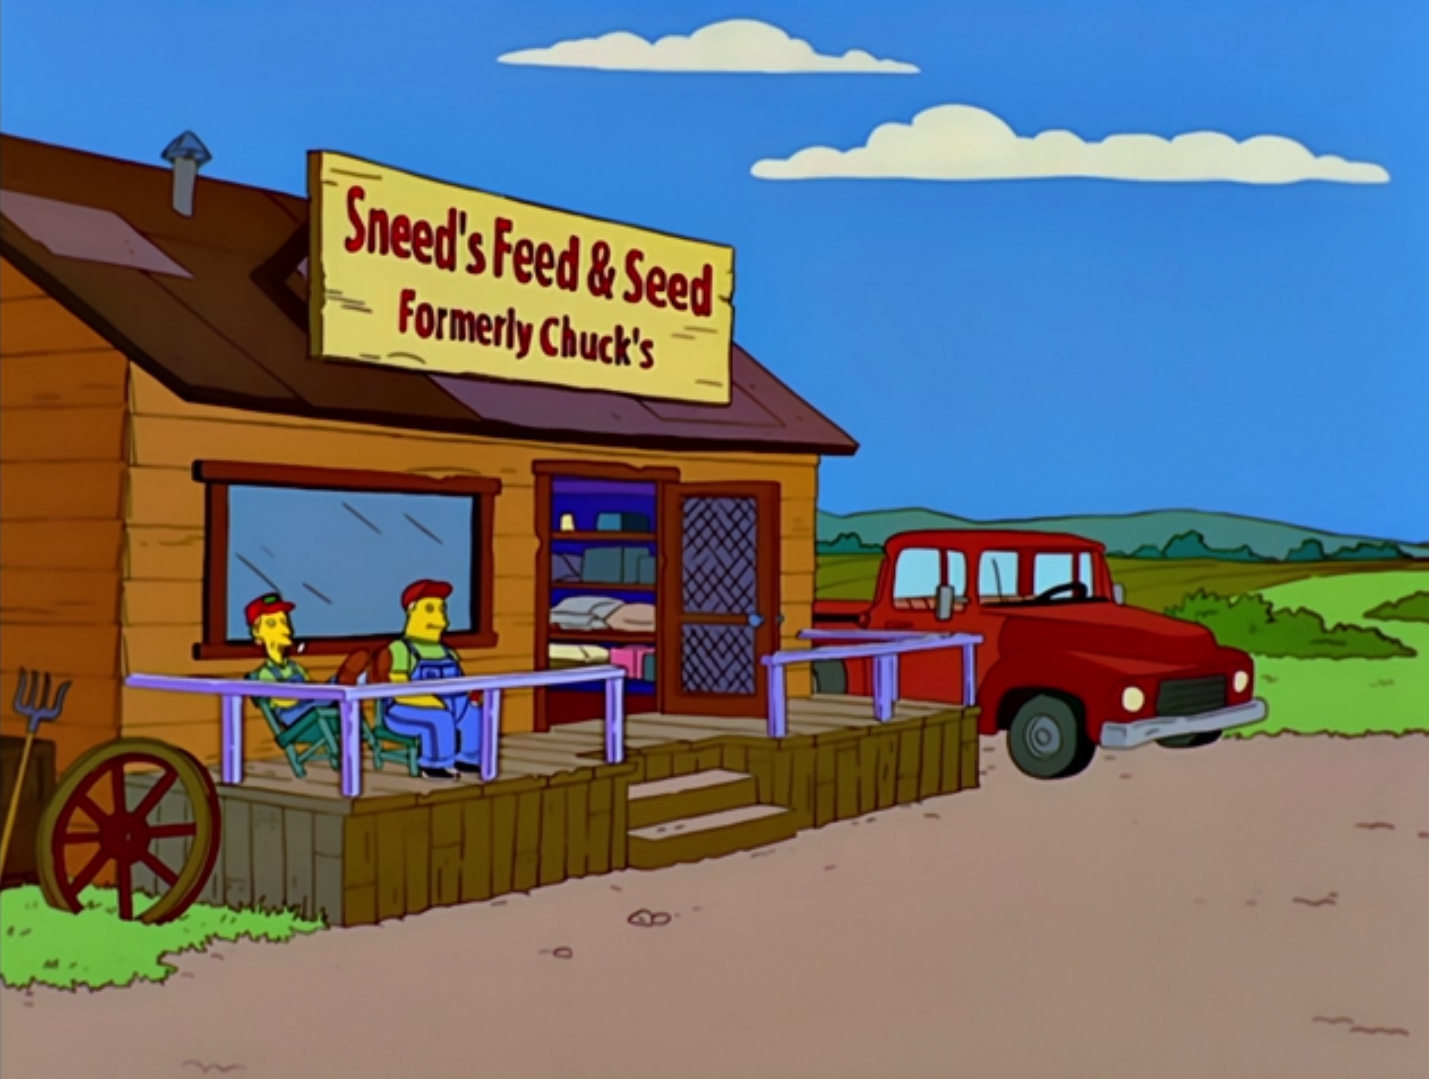 Sneed's feed and seed.png